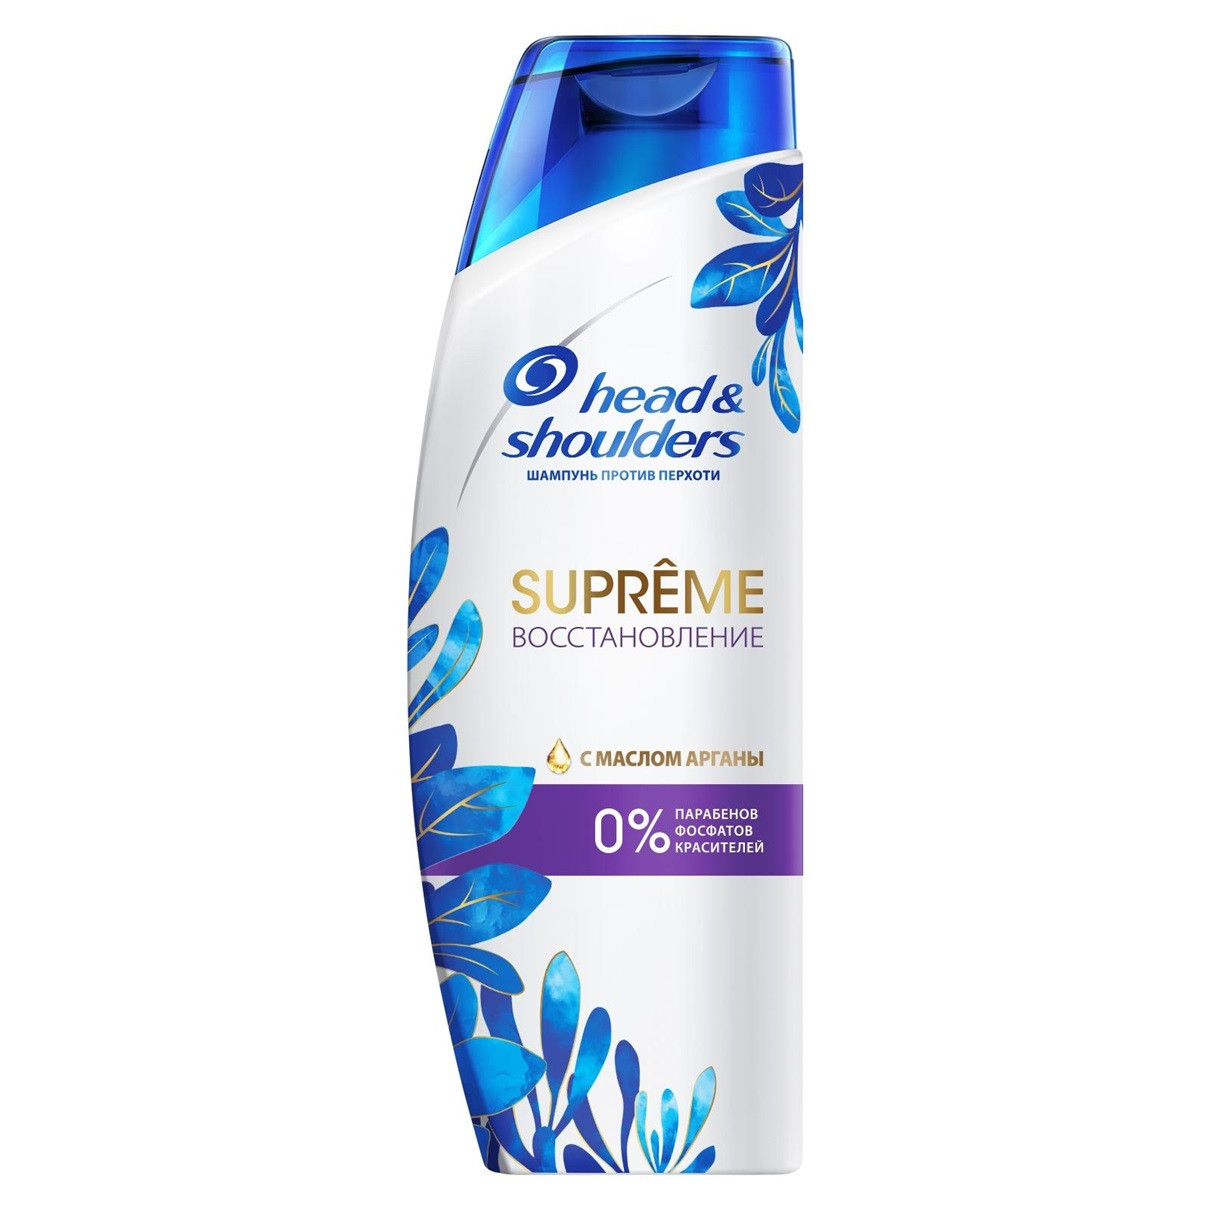 Шампунь Head & Shoulders Supreme Восстановление 300 мл